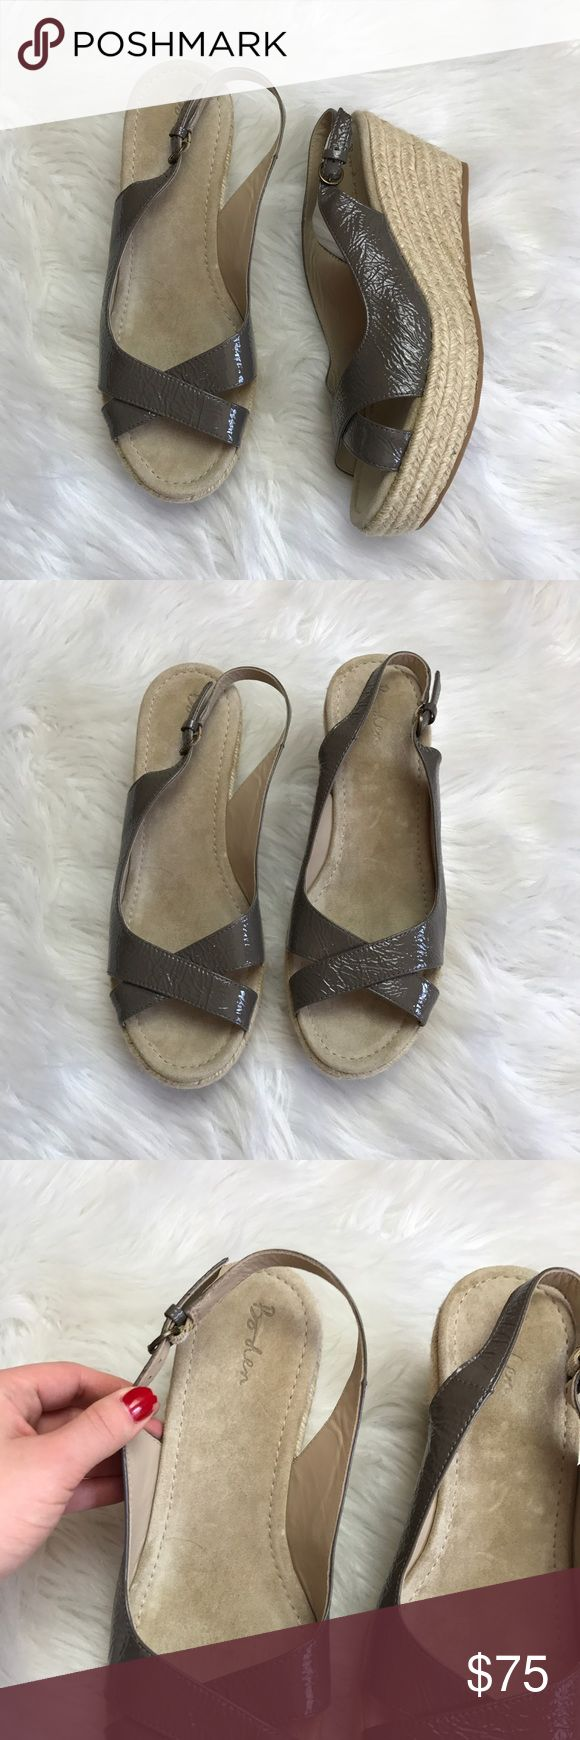 Nwob boden espadrille wedged sandals Size 10.5 brand new never worn! Inside is super soft! Heel measures at 3 inches high. Boden Shoes Wedges